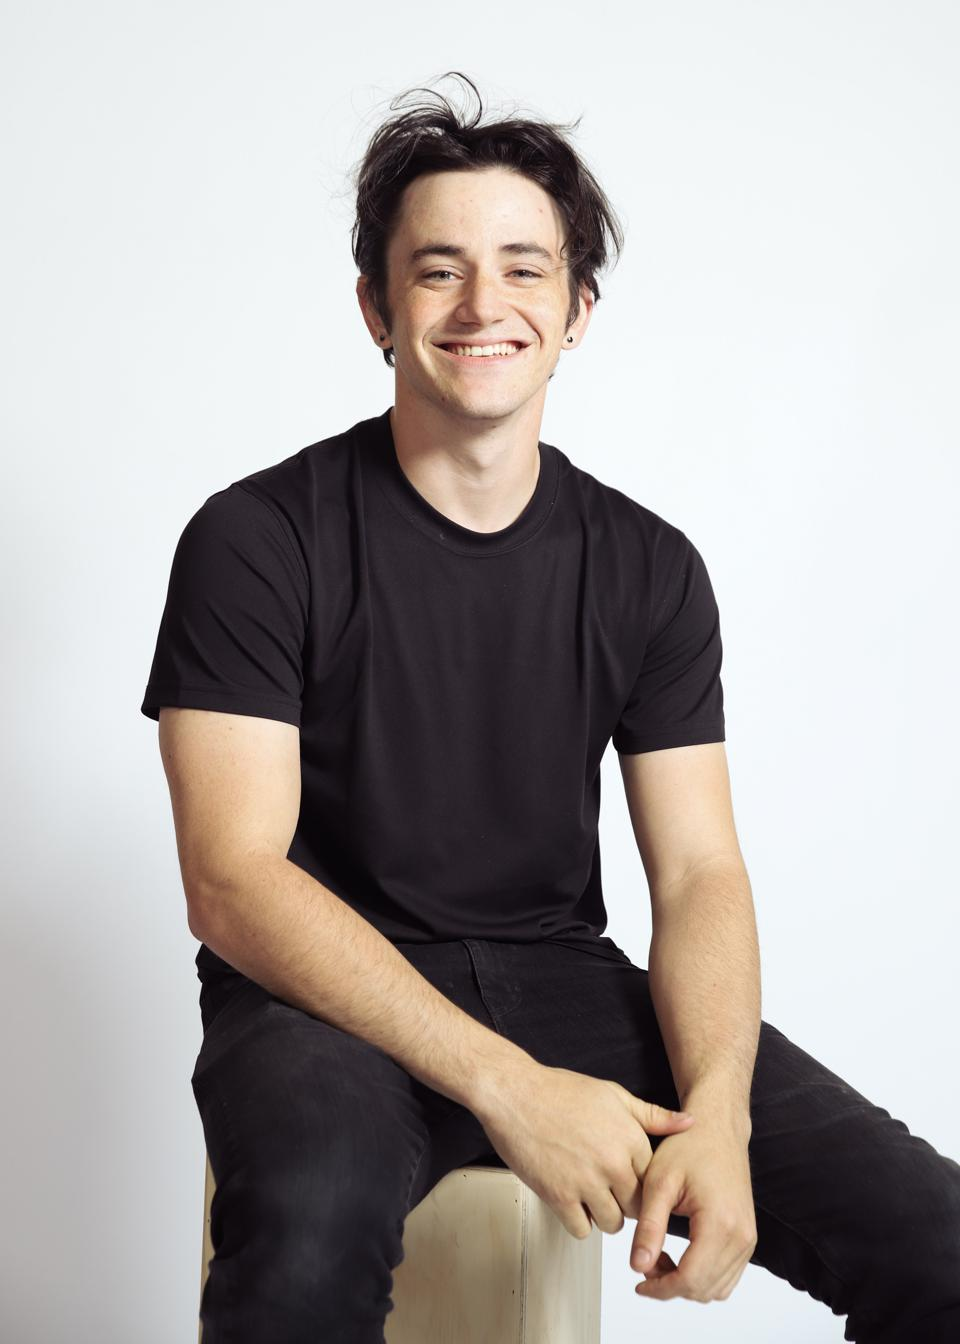 Handsome male sitting on a pillar with a white background. Black outfit.